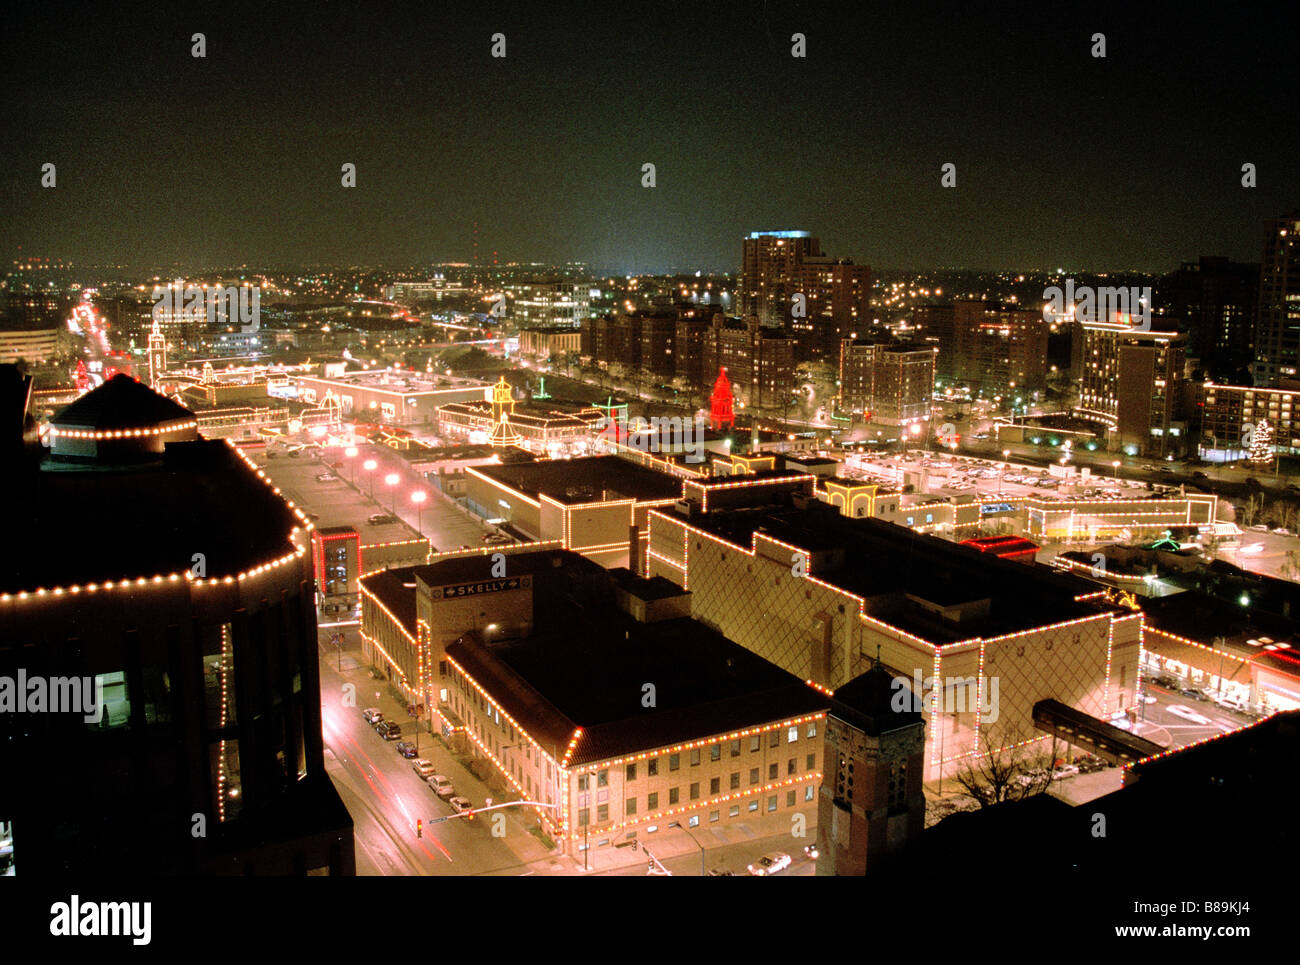 Plaza Lights From The Rooftops Kansas City Missouri United States